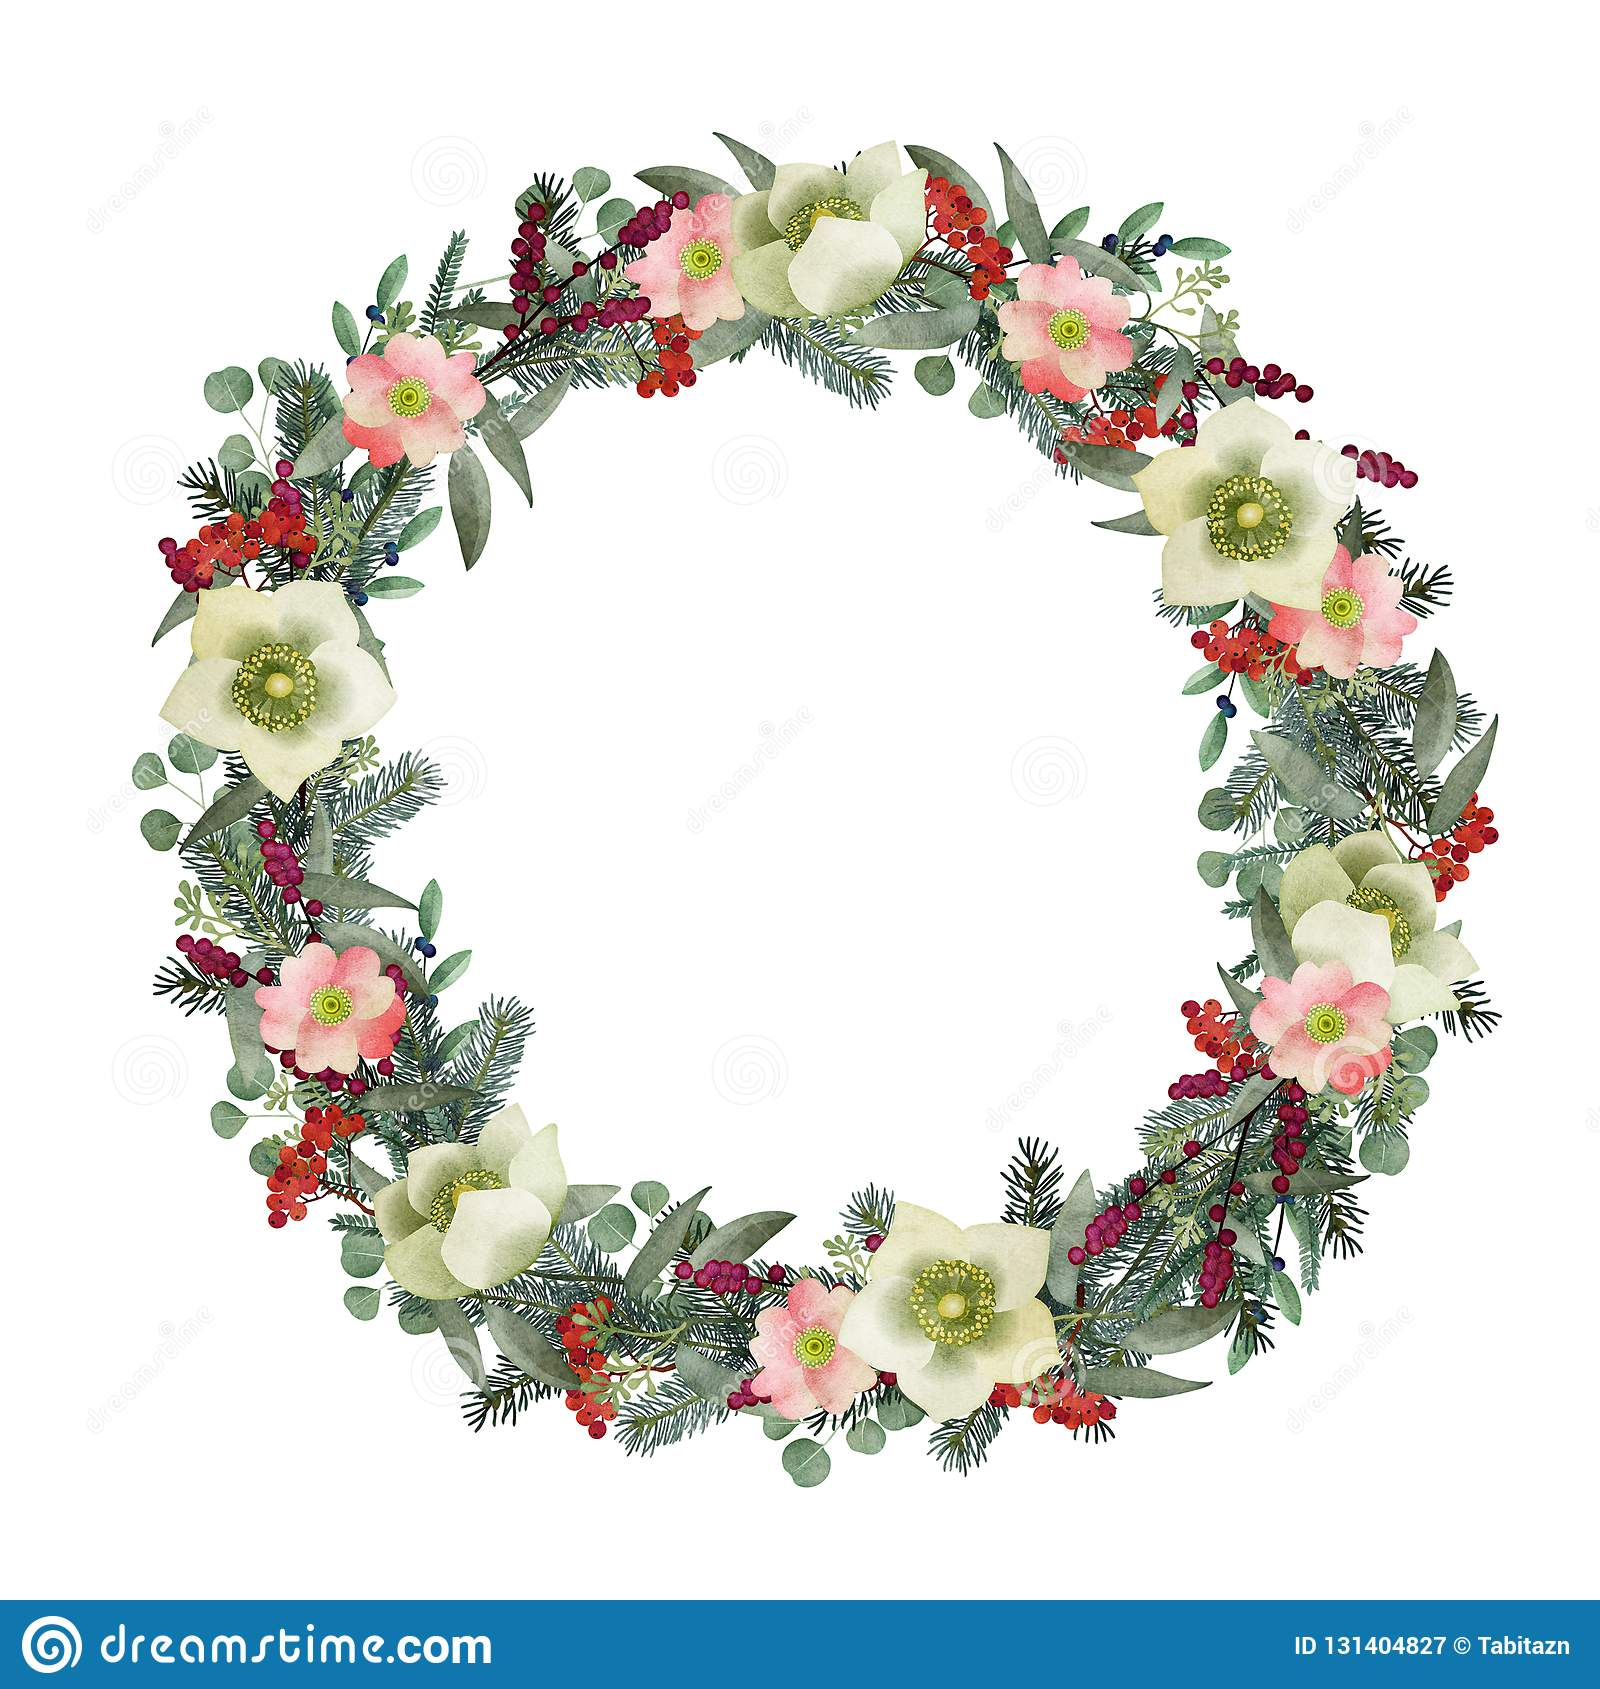 Winter Greeting Card Invitation Watercolor Christmas Wreath Fir Eucalyptus Branches Wild Roses Hellebores Flowers Stock Illustration Illustration Of Background Postcard 131404827